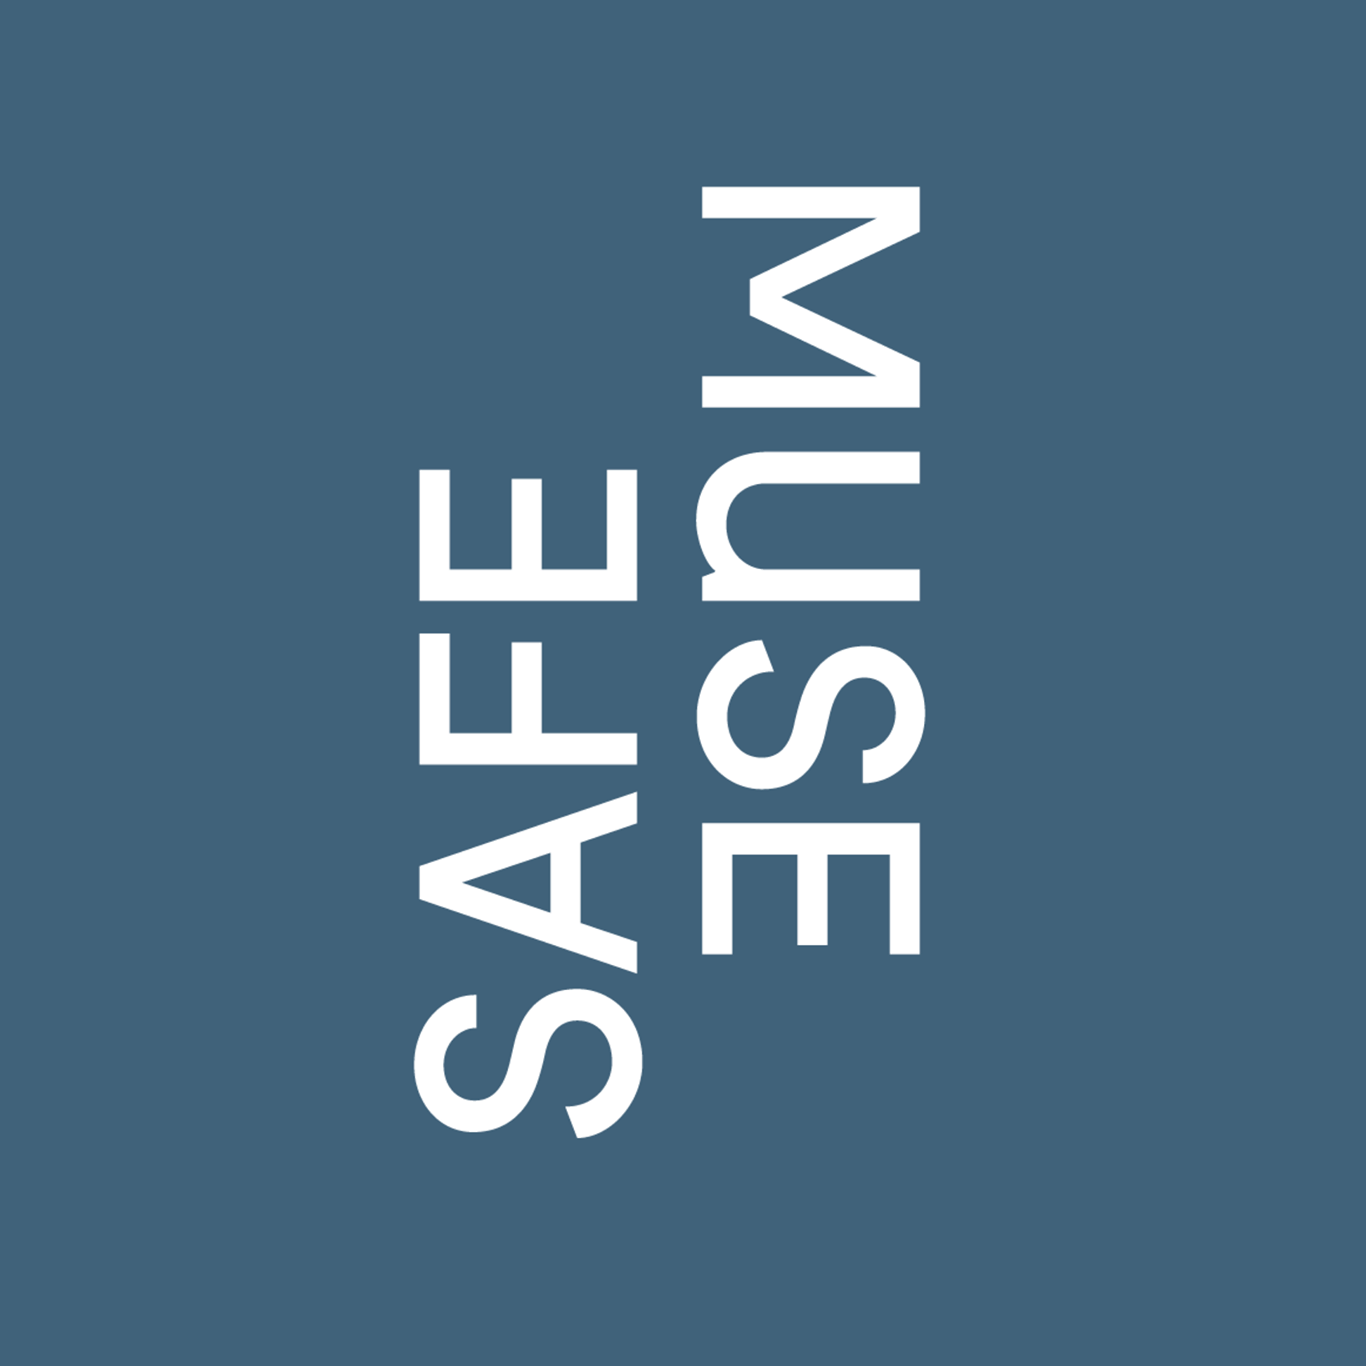 Dark blue square with white text: Safe Muse in white.